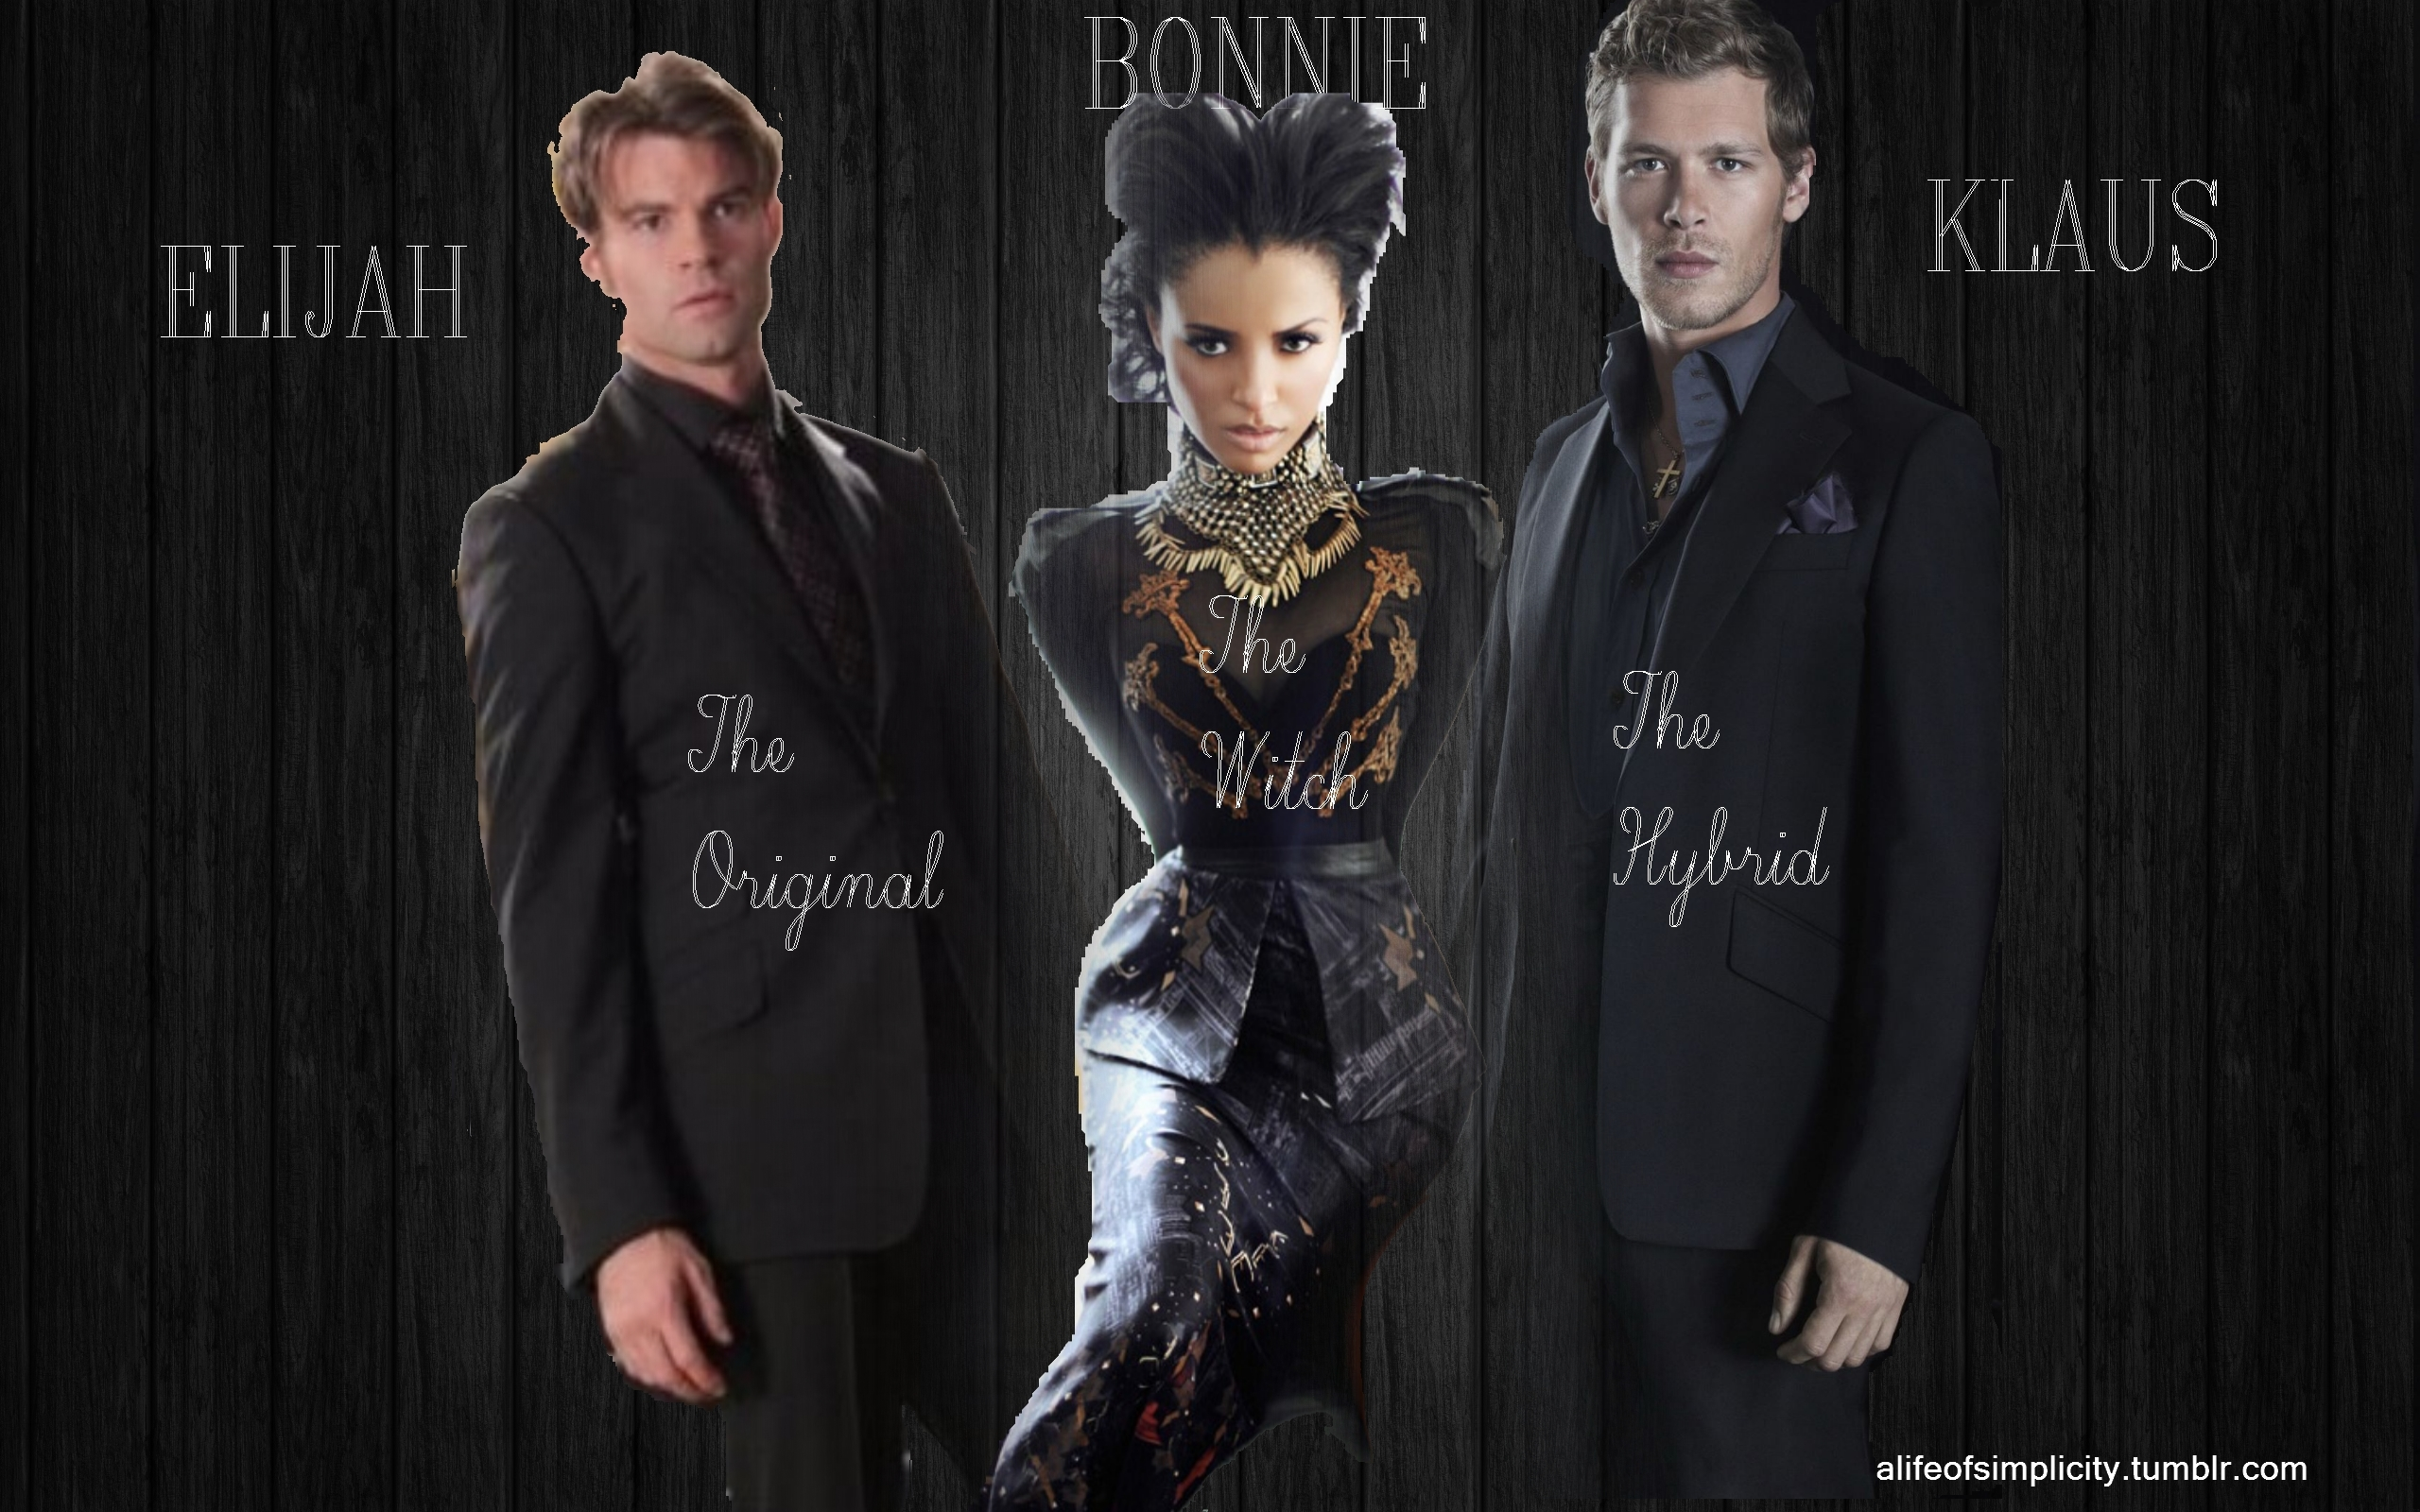 Klaus And Bonnie Images The Original Witch Hybrid Hd Wallpaper Background Photos